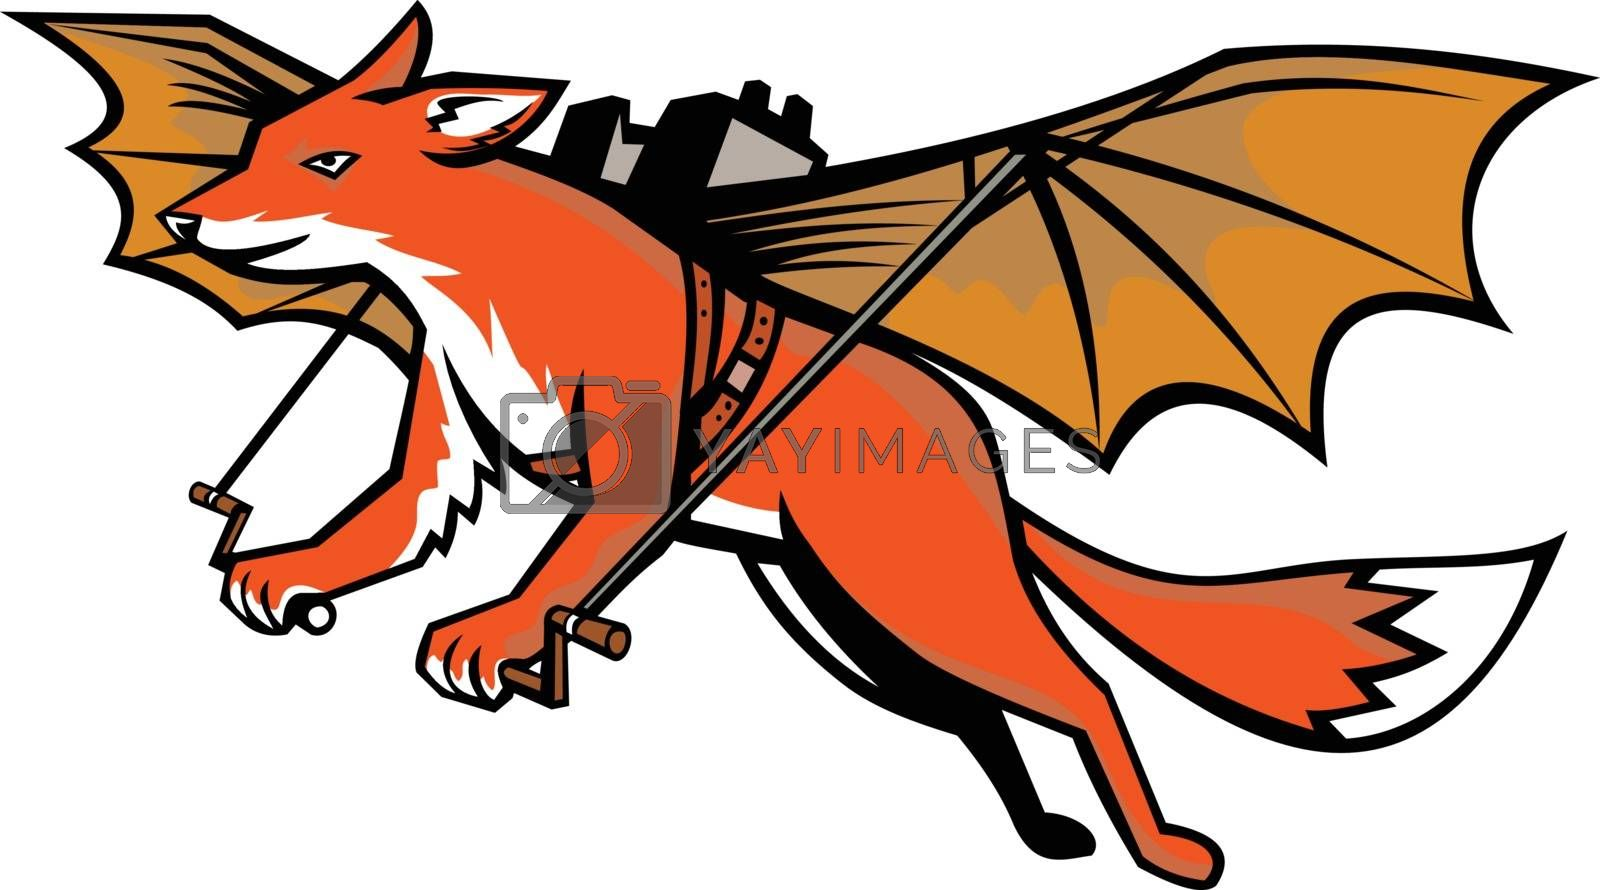 Flying Fox With Mechanical Wings Mascot by patrimonio